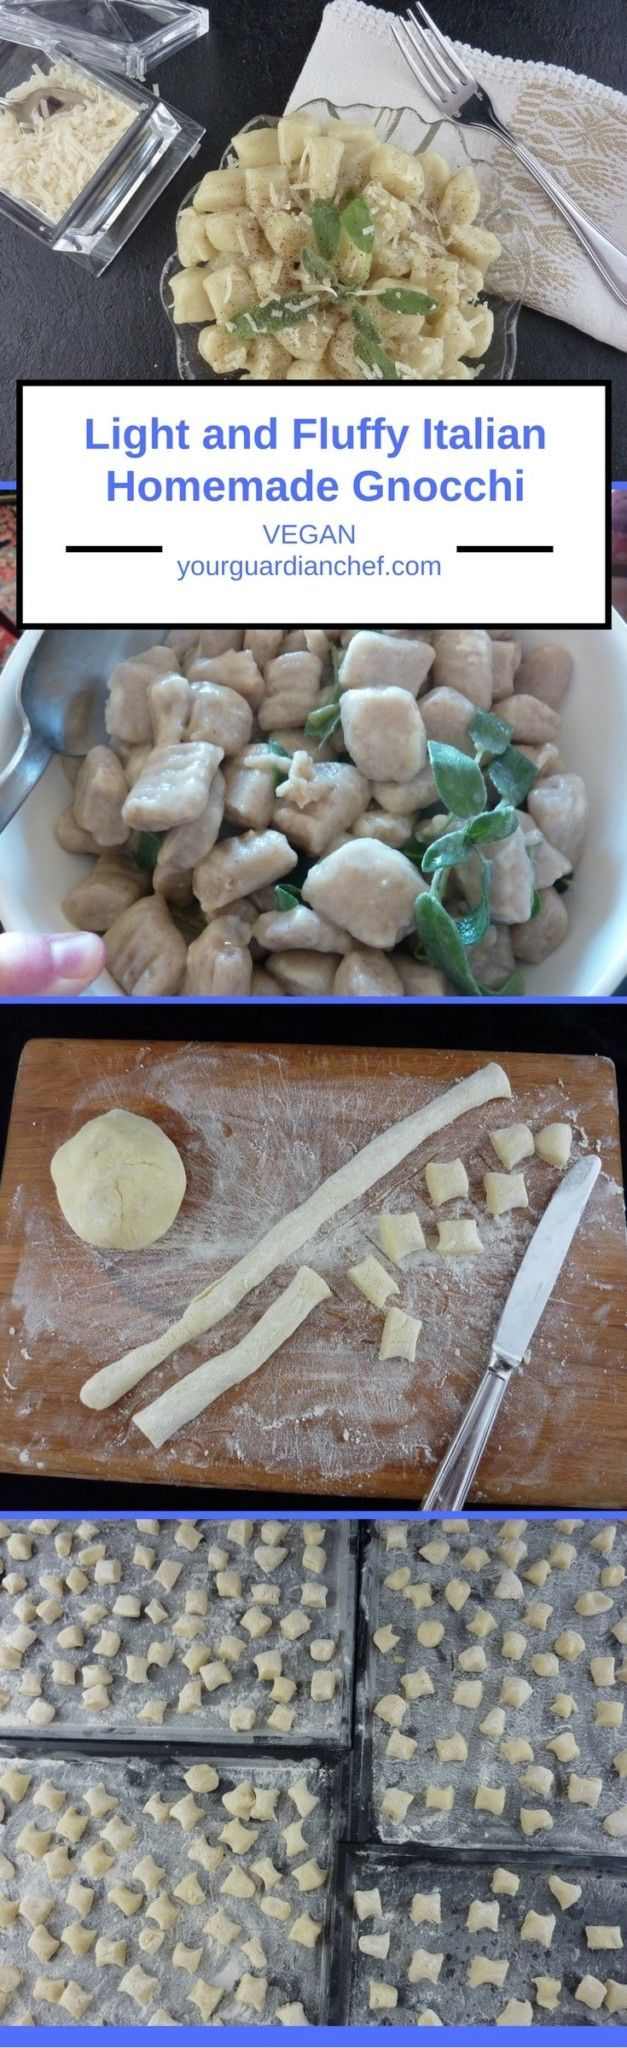 Light and Fluffy Italian Homemade Gnocchi Light and Fluffy Authentic Italian Homemade Gnocchi Vegan step by step - Your Guardian Chef   @YGuardianChef